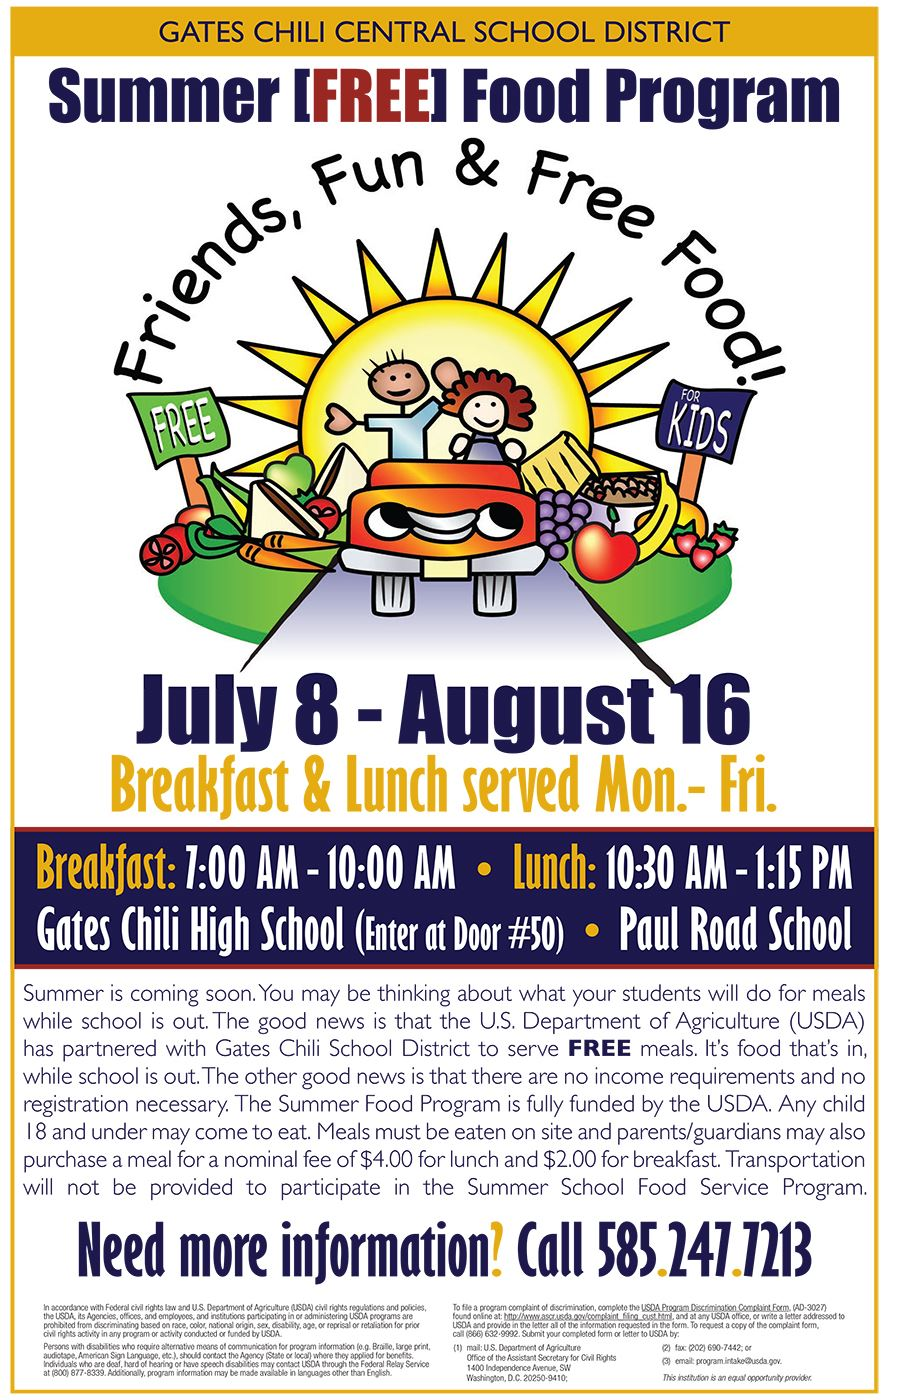 USDA Free Summer Food Program Flyer